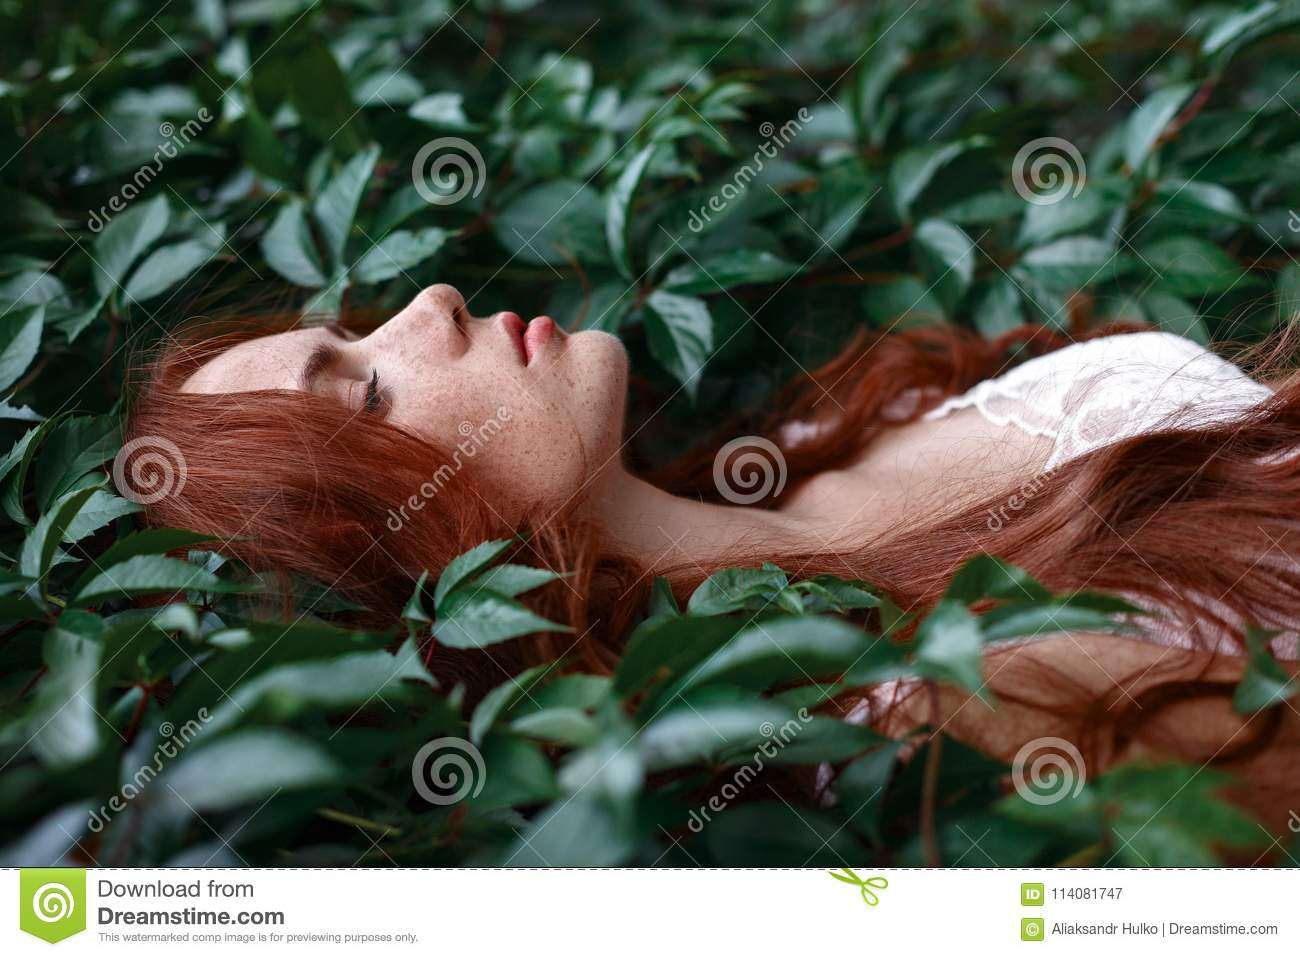 The girl with the red hair lies among the green leaves